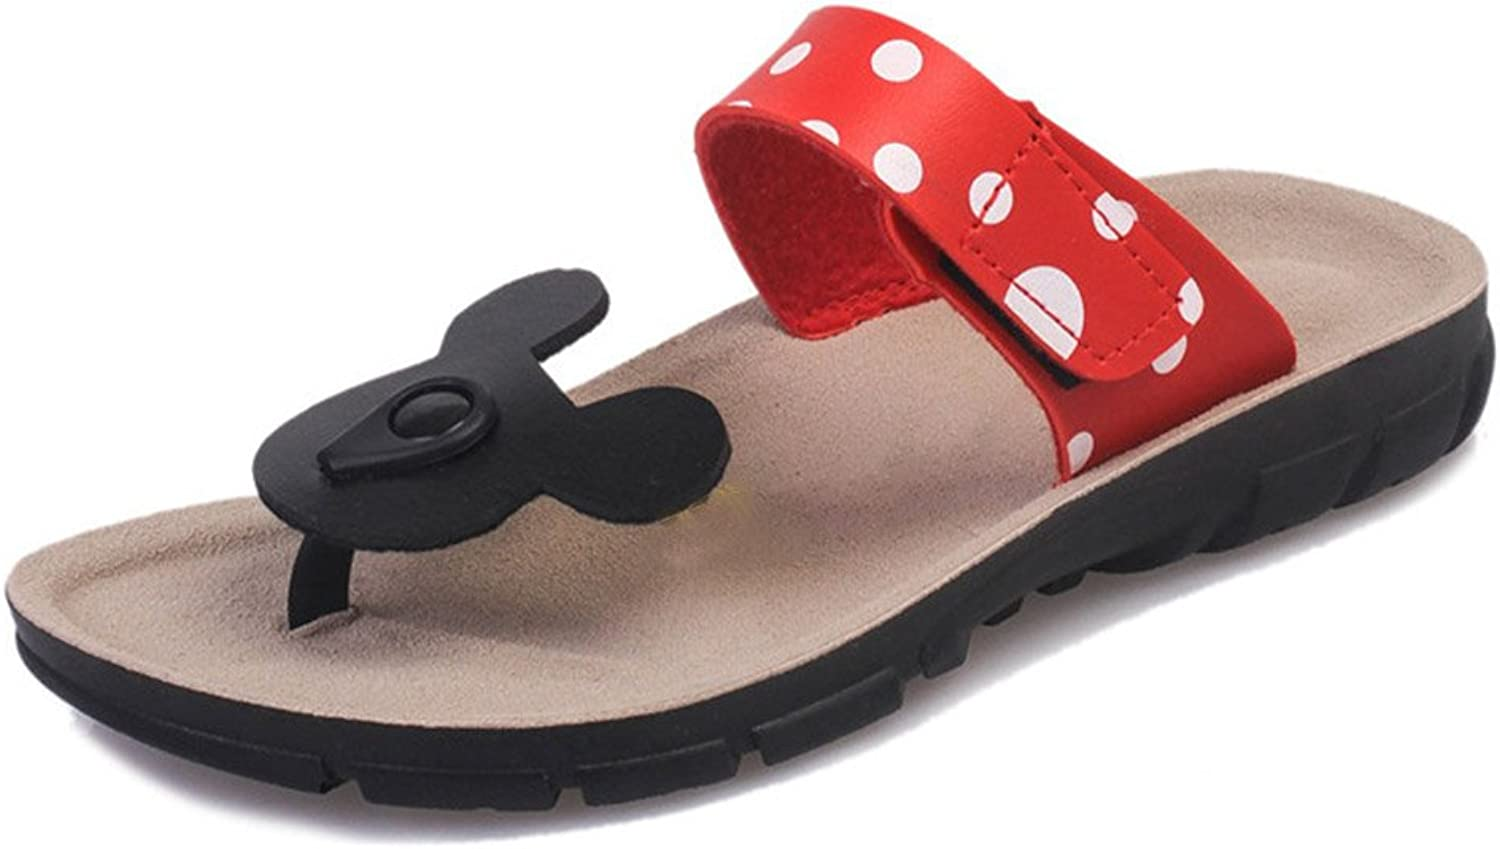 Kyle Walsh Pa Women Thongs Sandals-Comfort Mickey Mouse Flip Flops Flat shoes